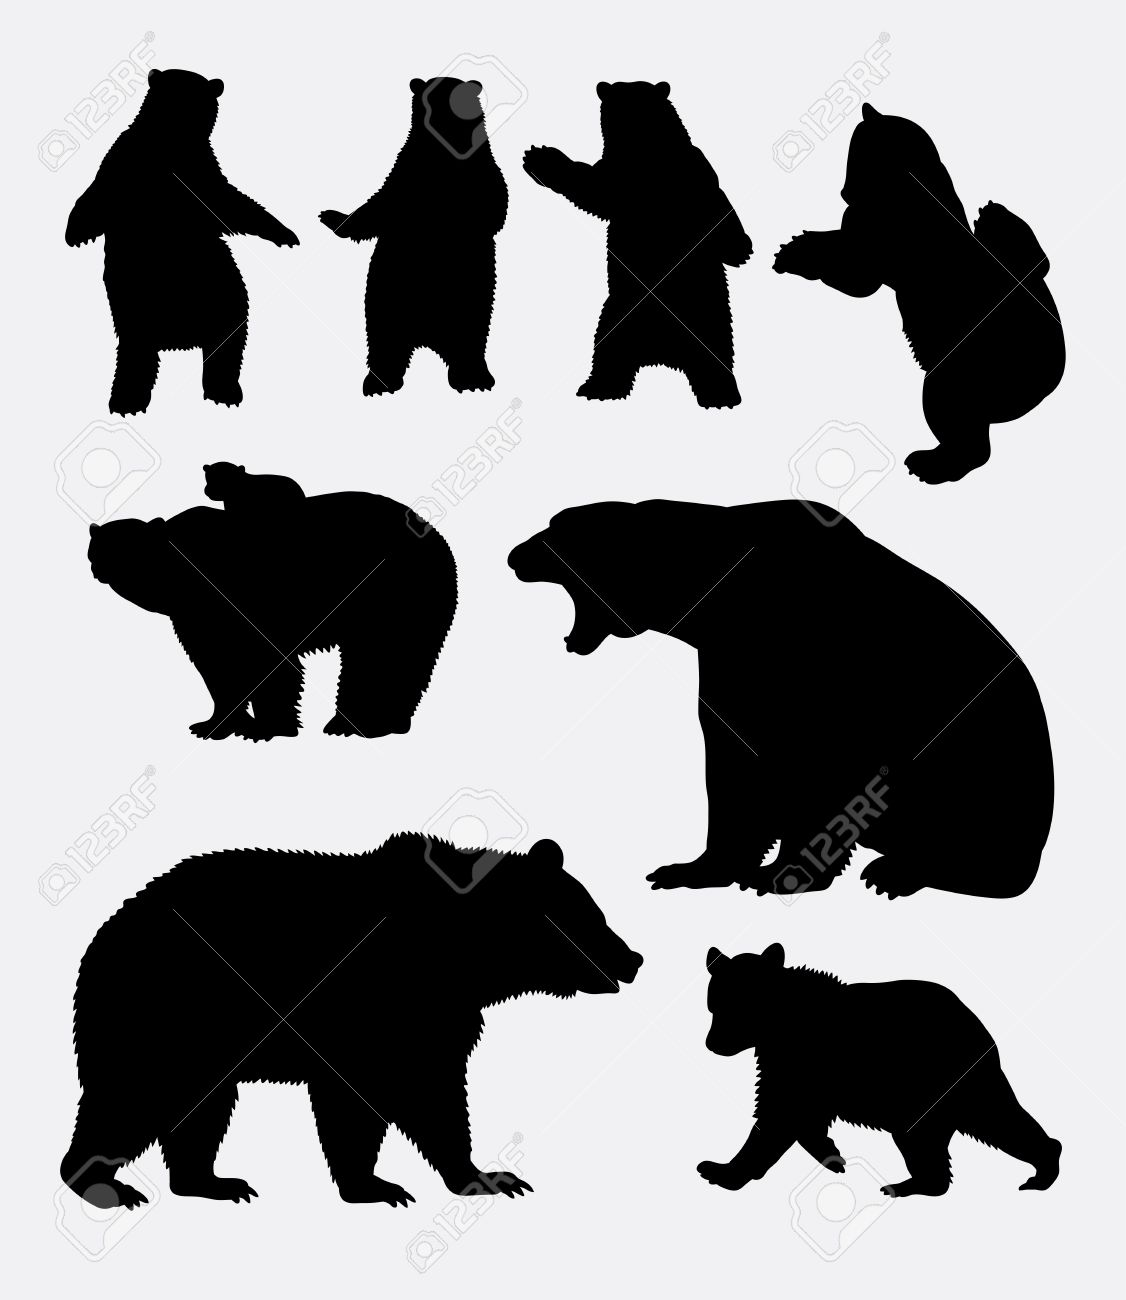 bear silhouette stock photos royalty free bear silhouette images  - bear silhouette bear wild animal silhouette  good use for symbol  web